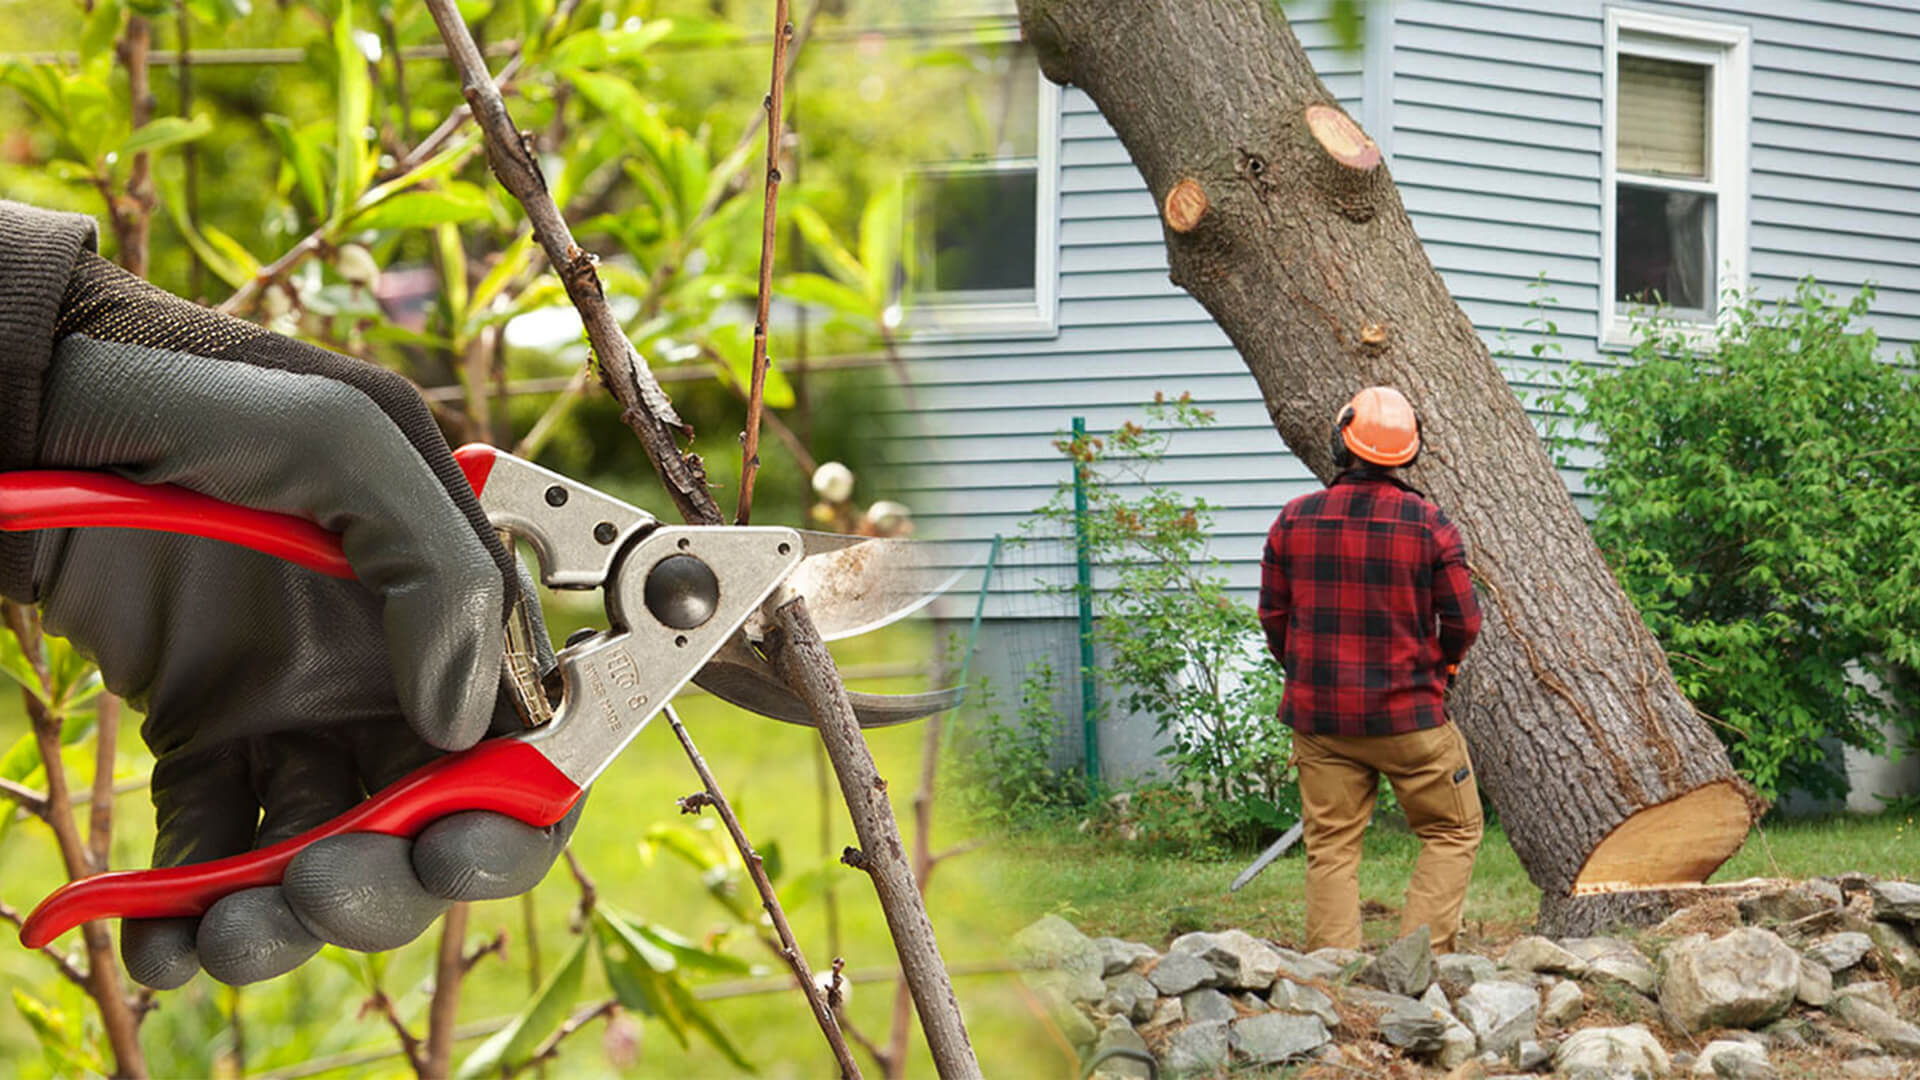 Tree pruning & tree removal-Tamiami FL Tree Trimming and Stump Grinding Services-We Offer Tree Trimming Services, Tree Removal, Tree Pruning, Tree Cutting, Residential and Commercial Tree Trimming Services, Storm Damage, Emergency Tree Removal, Land Clearing, Tree Companies, Tree Care Service, Stump Grinding, and we're the Best Tree Trimming Company Near You Guaranteed!